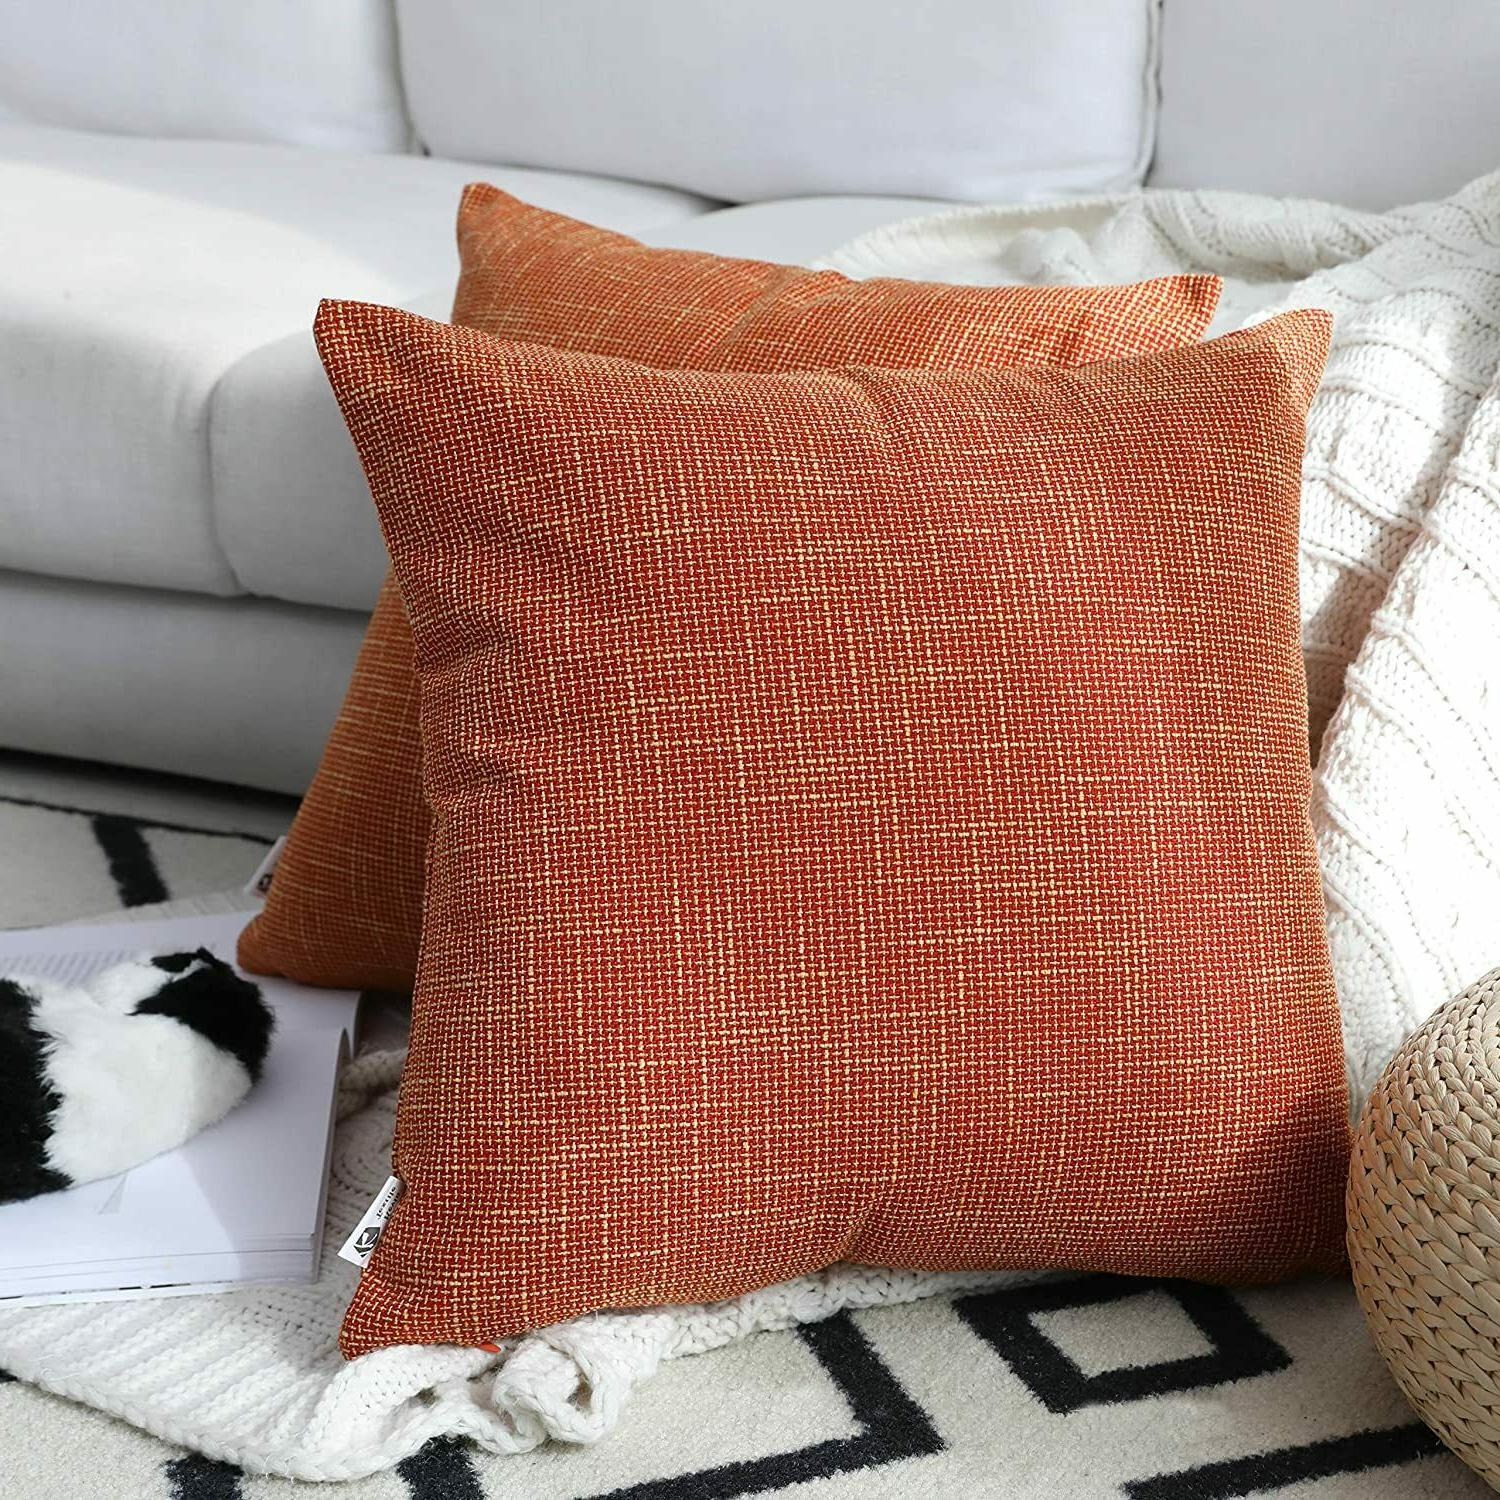 Pair Covers By Kevin x 55cm 55cm, Orange, New